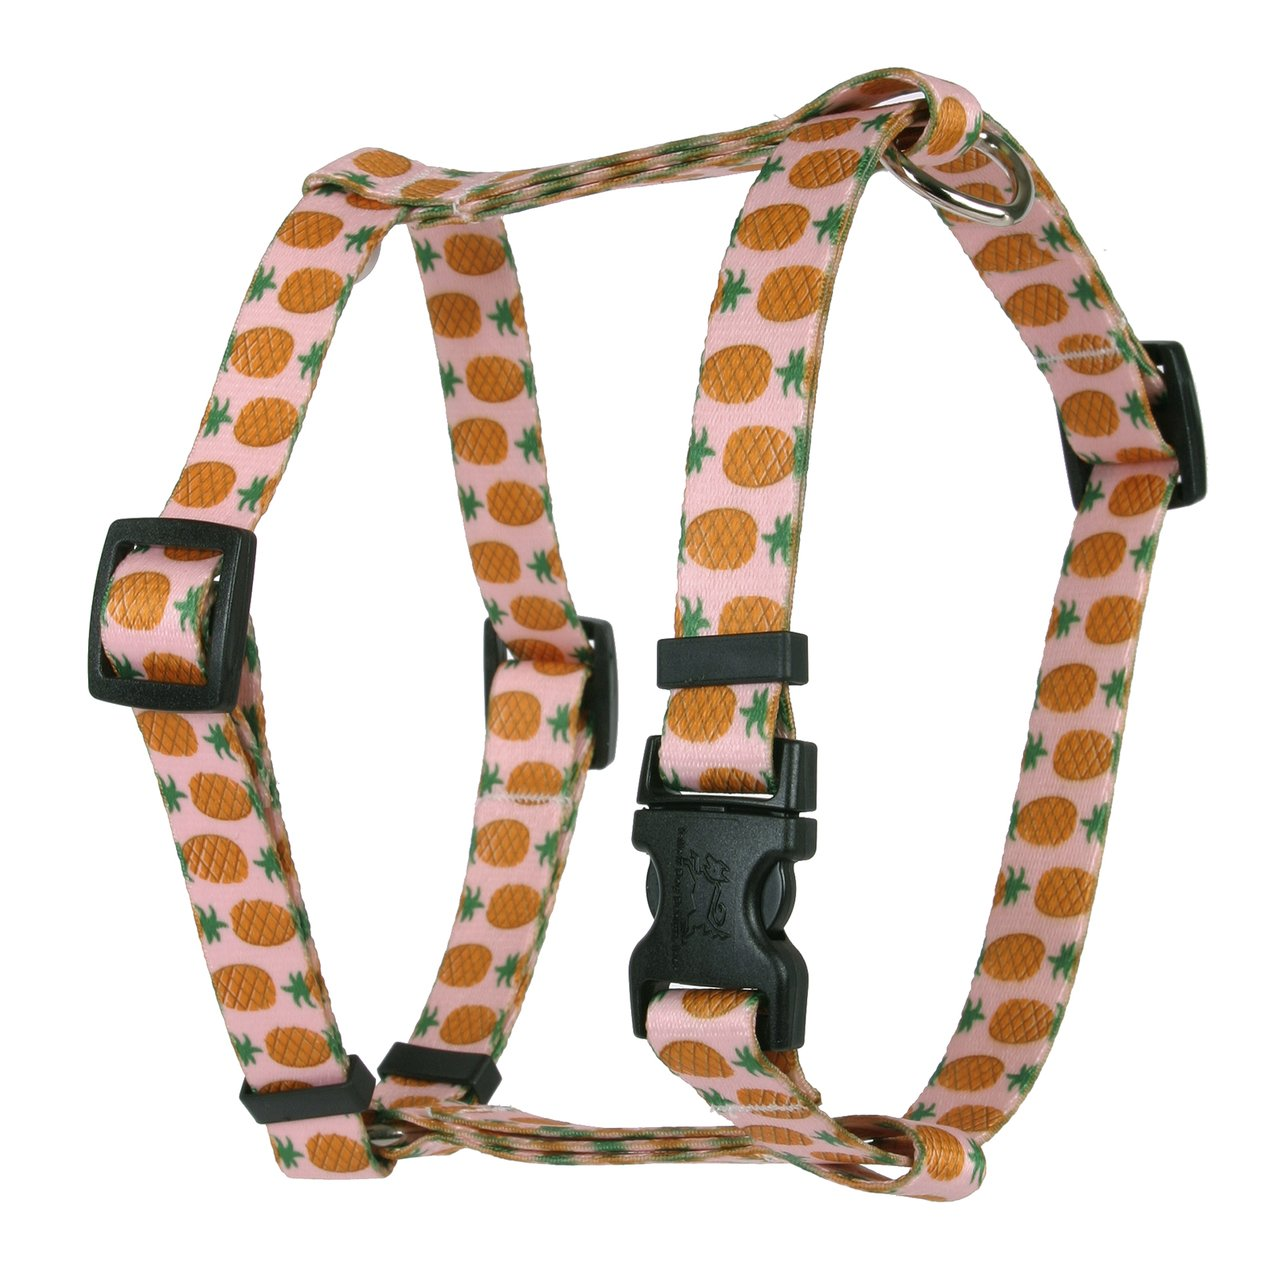 Yellow Dog Design Pineapples Pink Roman H Dog Harness, Small/Medium-3/4 Wide fits Chest of 14 to 20'' by Yellow Dog Design